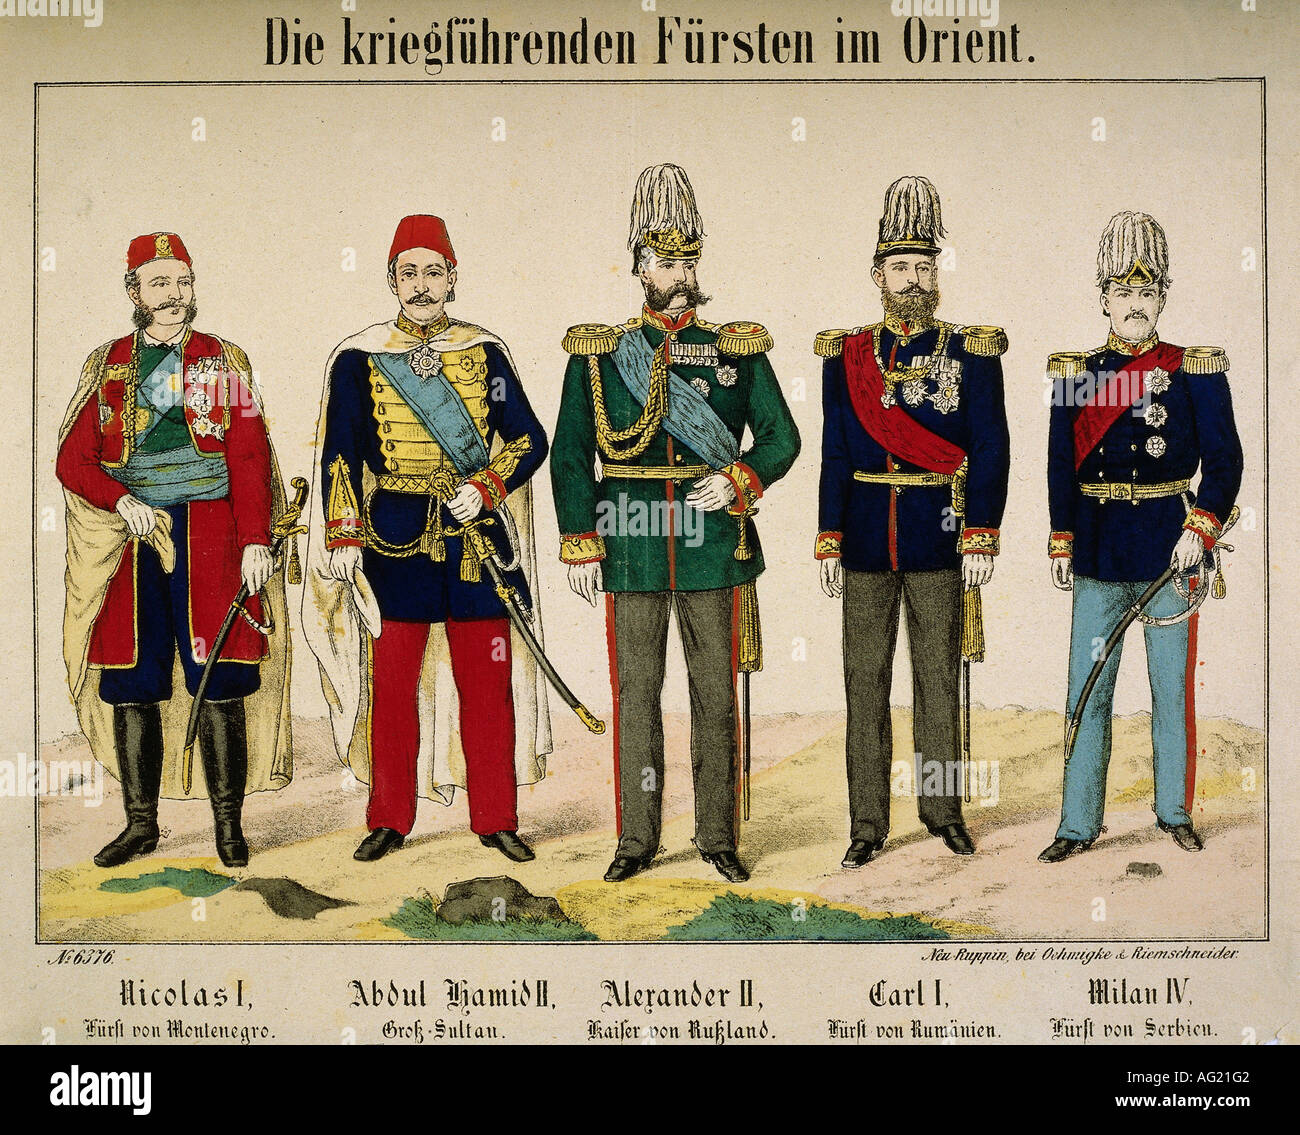 events, Russo-Turkish War 1877 - 1878, the warring monarchs: Nicholas I of Montenegro, Sultan Abd ul Hamid II, Alexander II of Russia, Charles I Romania, Milan IV of Serbia, engraving, Oehmigke & Riemschneider, Neuruppin, 1878, Germany, Balkans, Ottoman Empire, 19th century, Russo Turkish, historic, historical, people, Additional-Rights-Clearances-NA - Stock Image